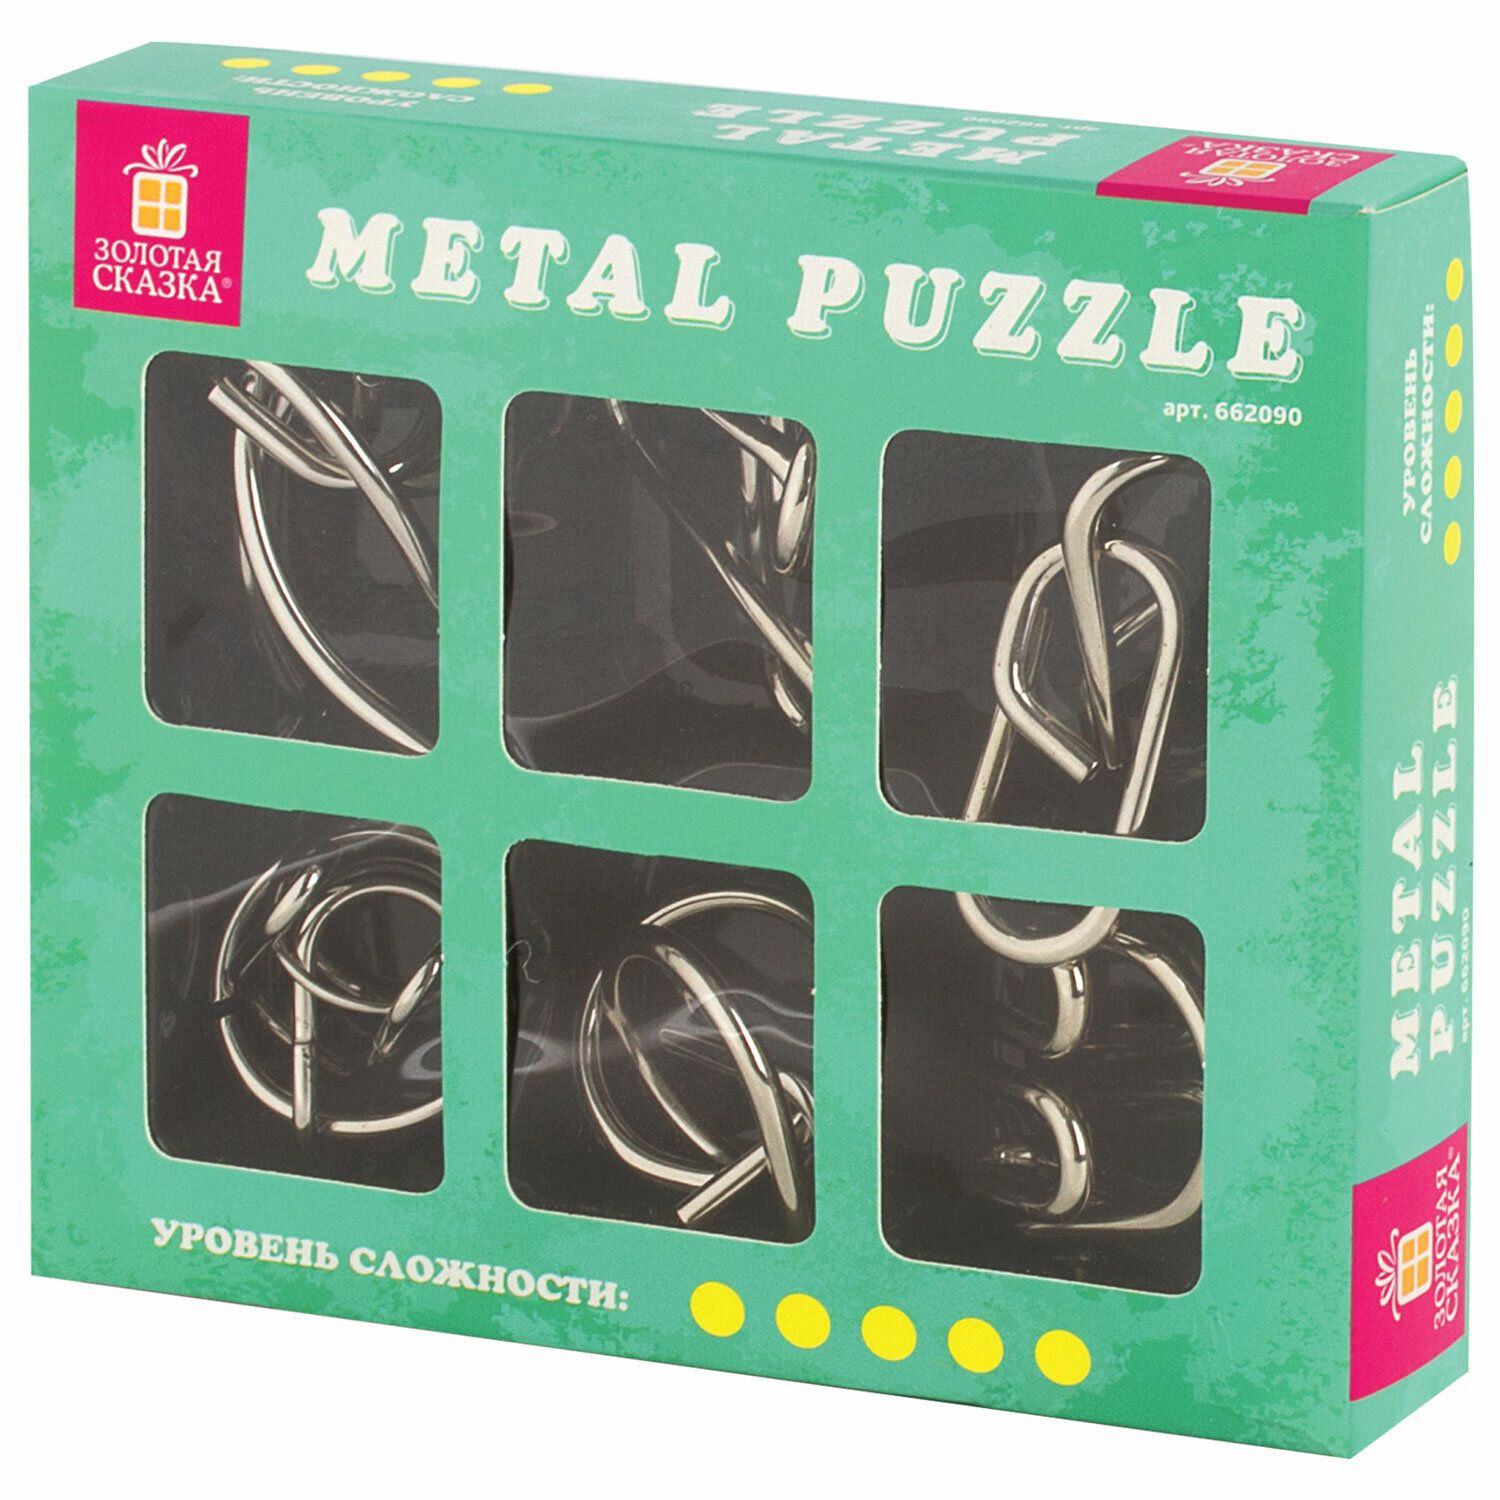 """GOLDEN FAIRY TALE / Metal puzzles (difficulty level """"PRO""""), set of 6 pieces"""